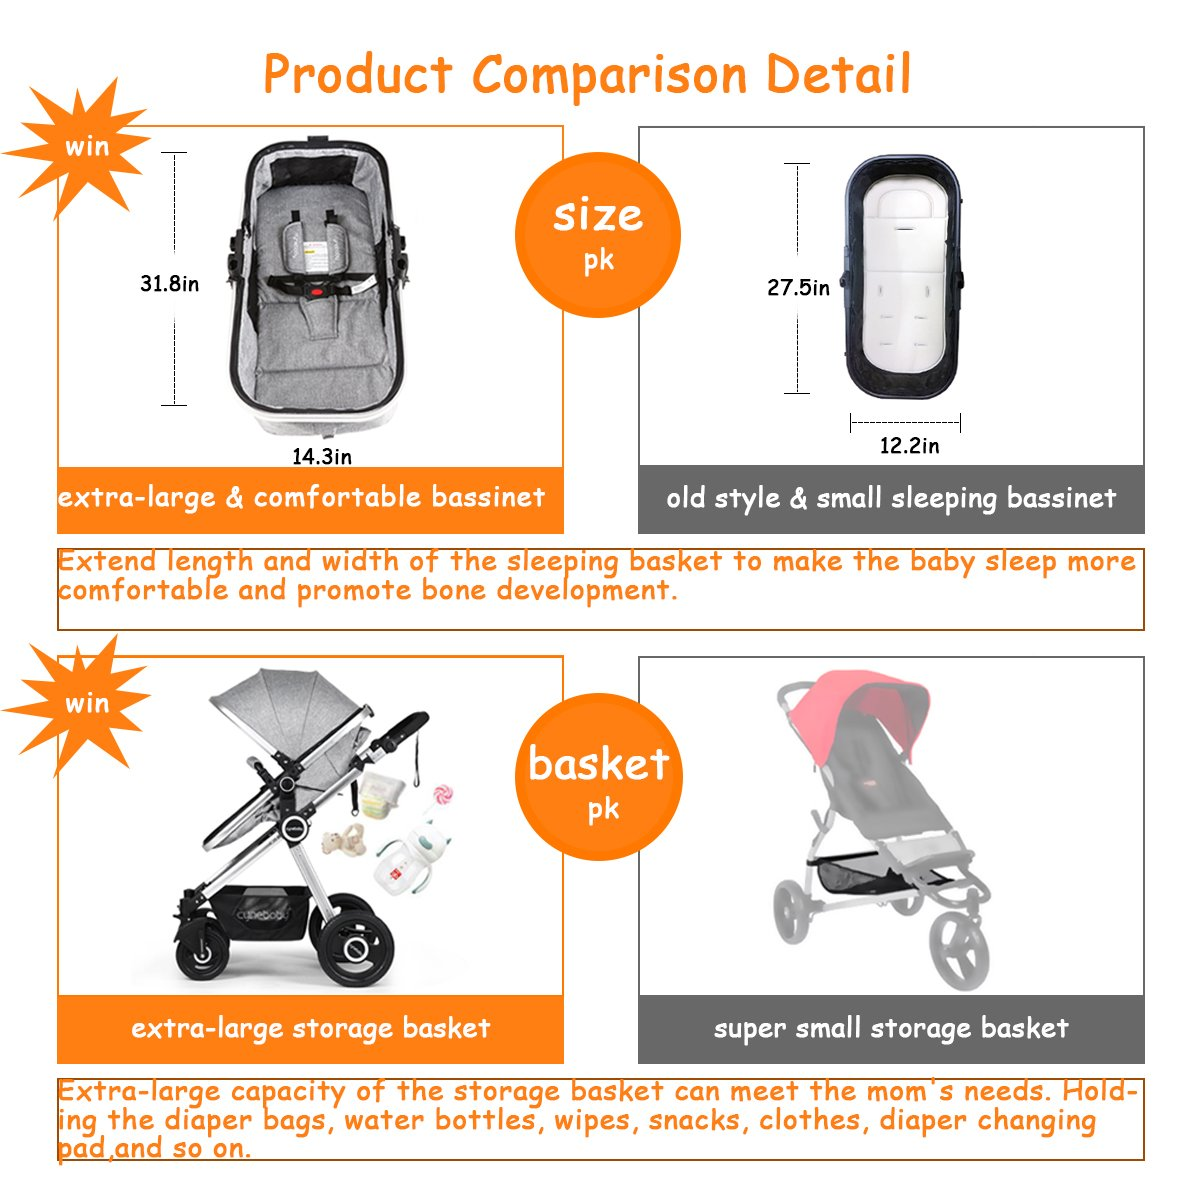 Infant Toddler Stroller Folding Convertible Carriage Infant Anti-Shock High View Luxury Baby Stroller Newborn Pram Stroller Pushchair Stroller for Babies(Light Camel) by Cynebaby (Image #4)